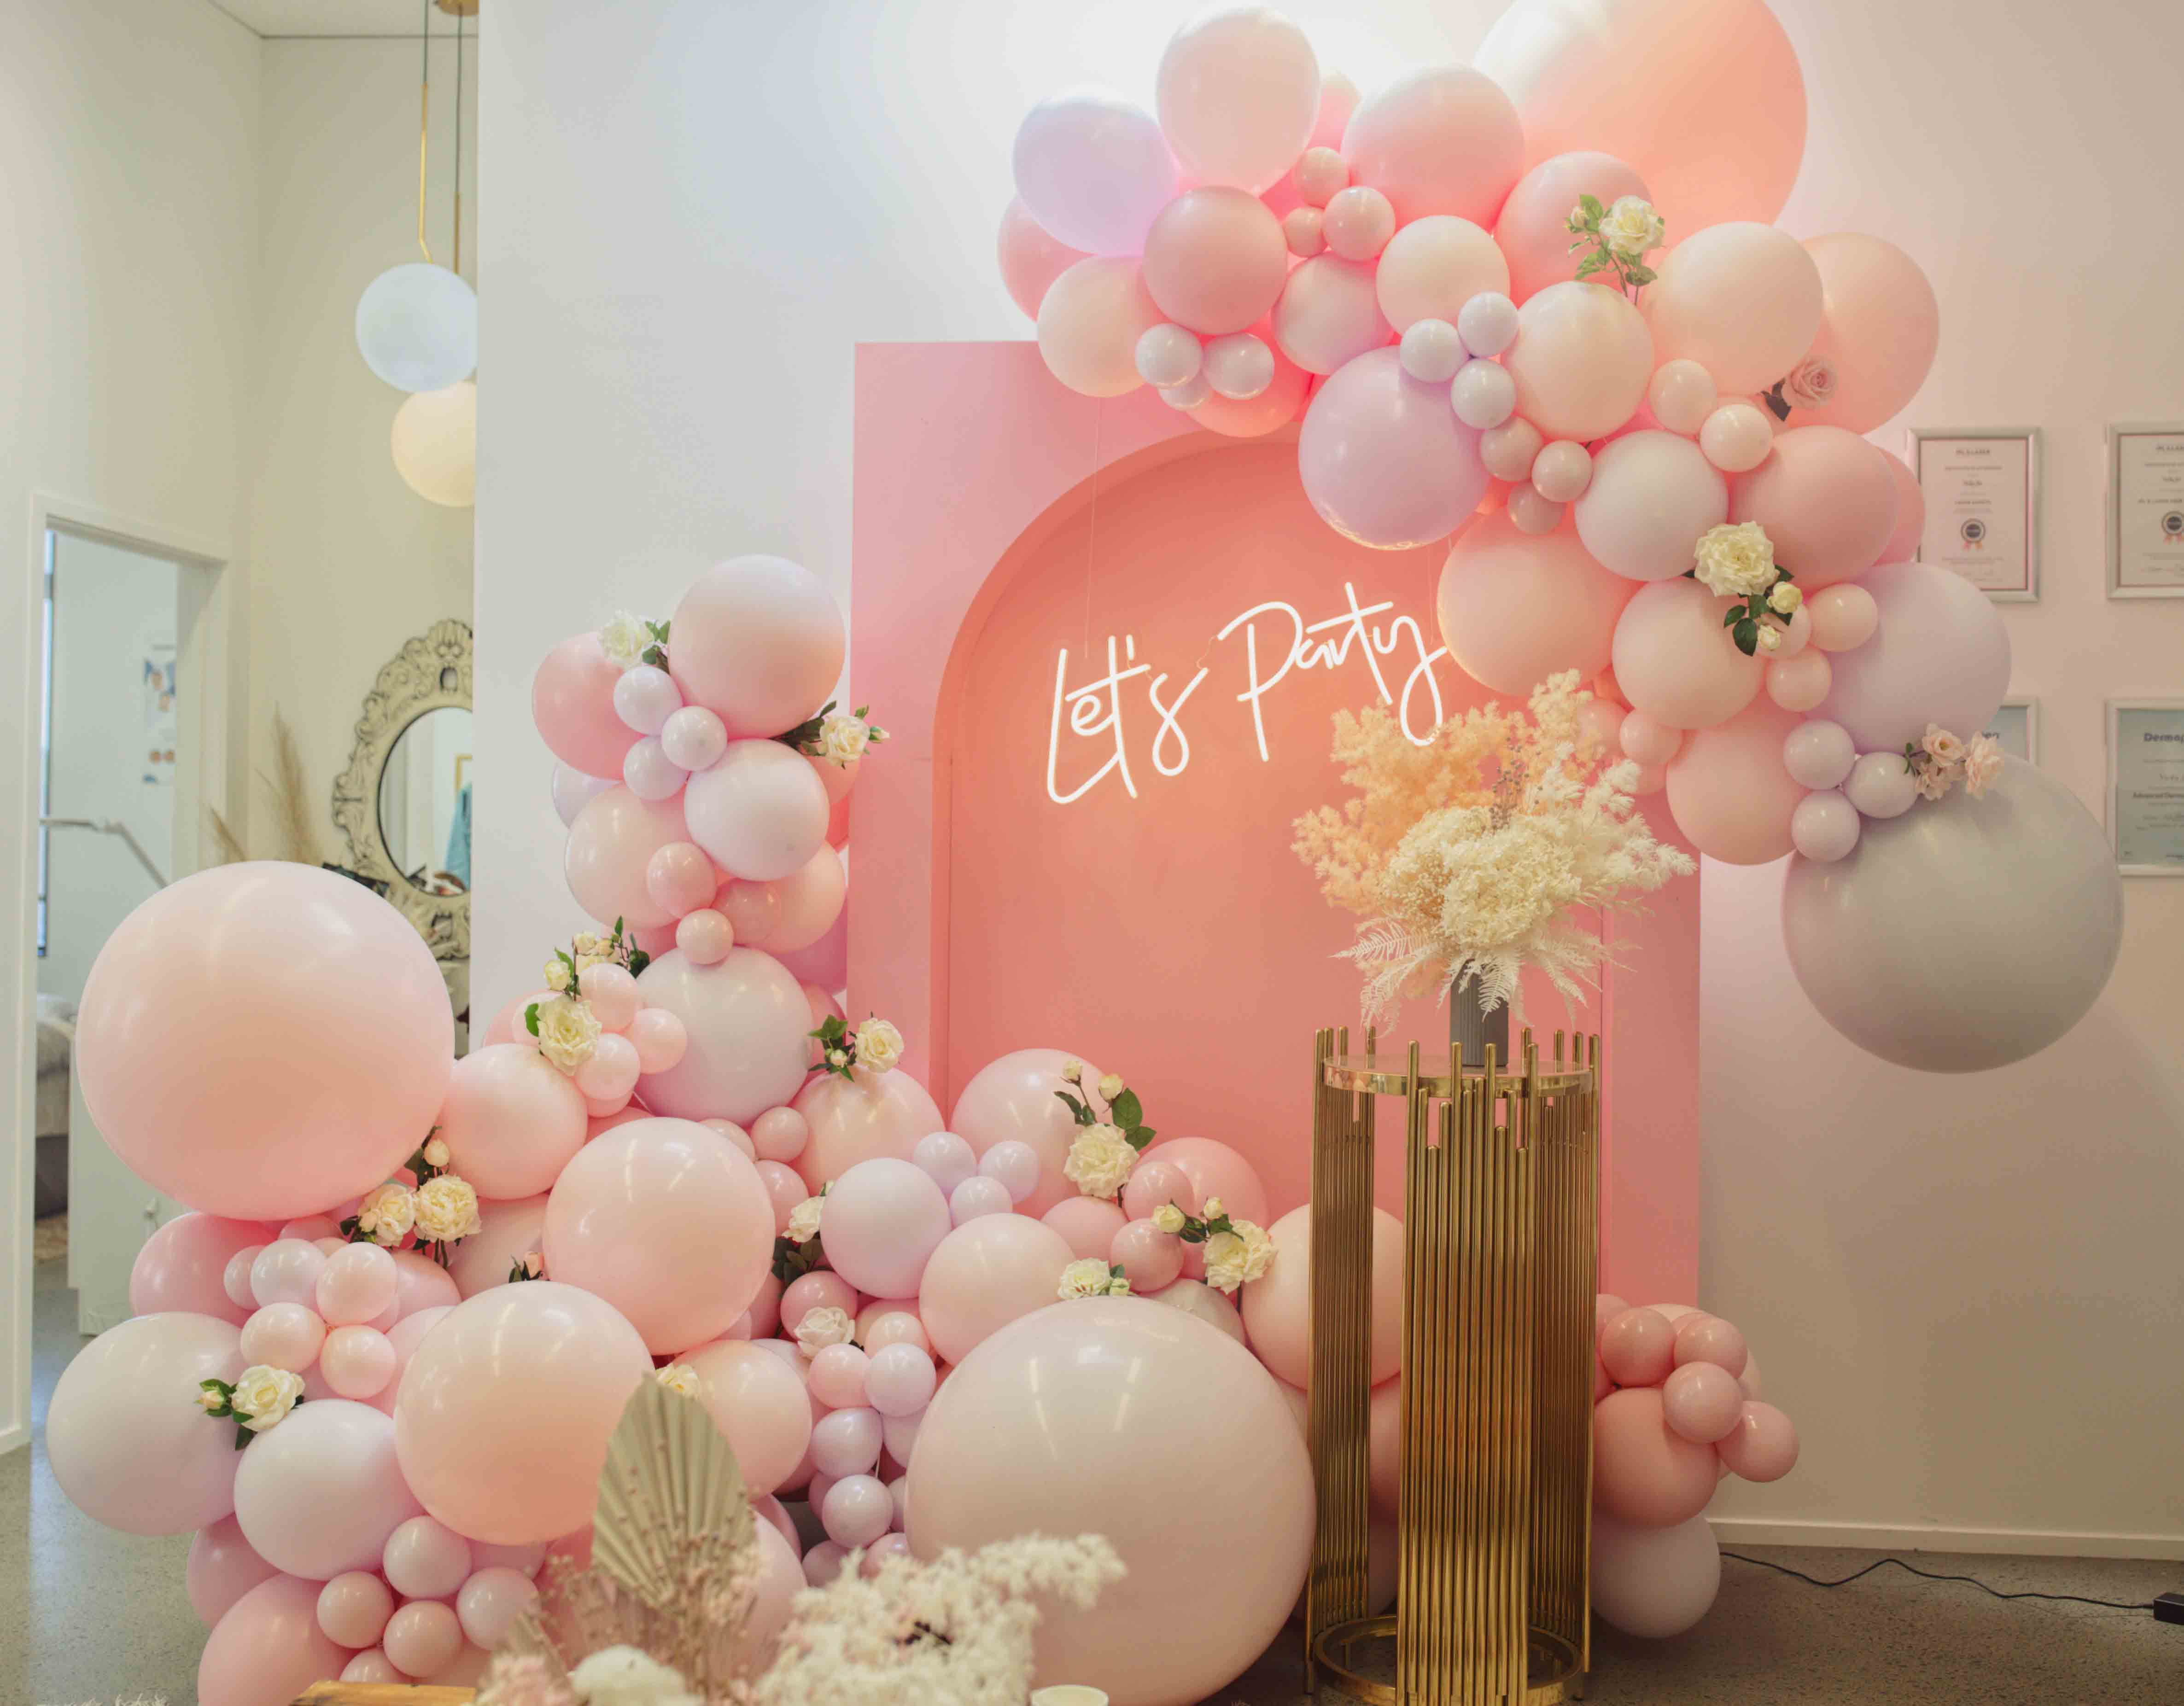 Styling & Hire Luxe Dream, Florals by Luxe Dream Floral Studio, Balloons by Champers Party Shop